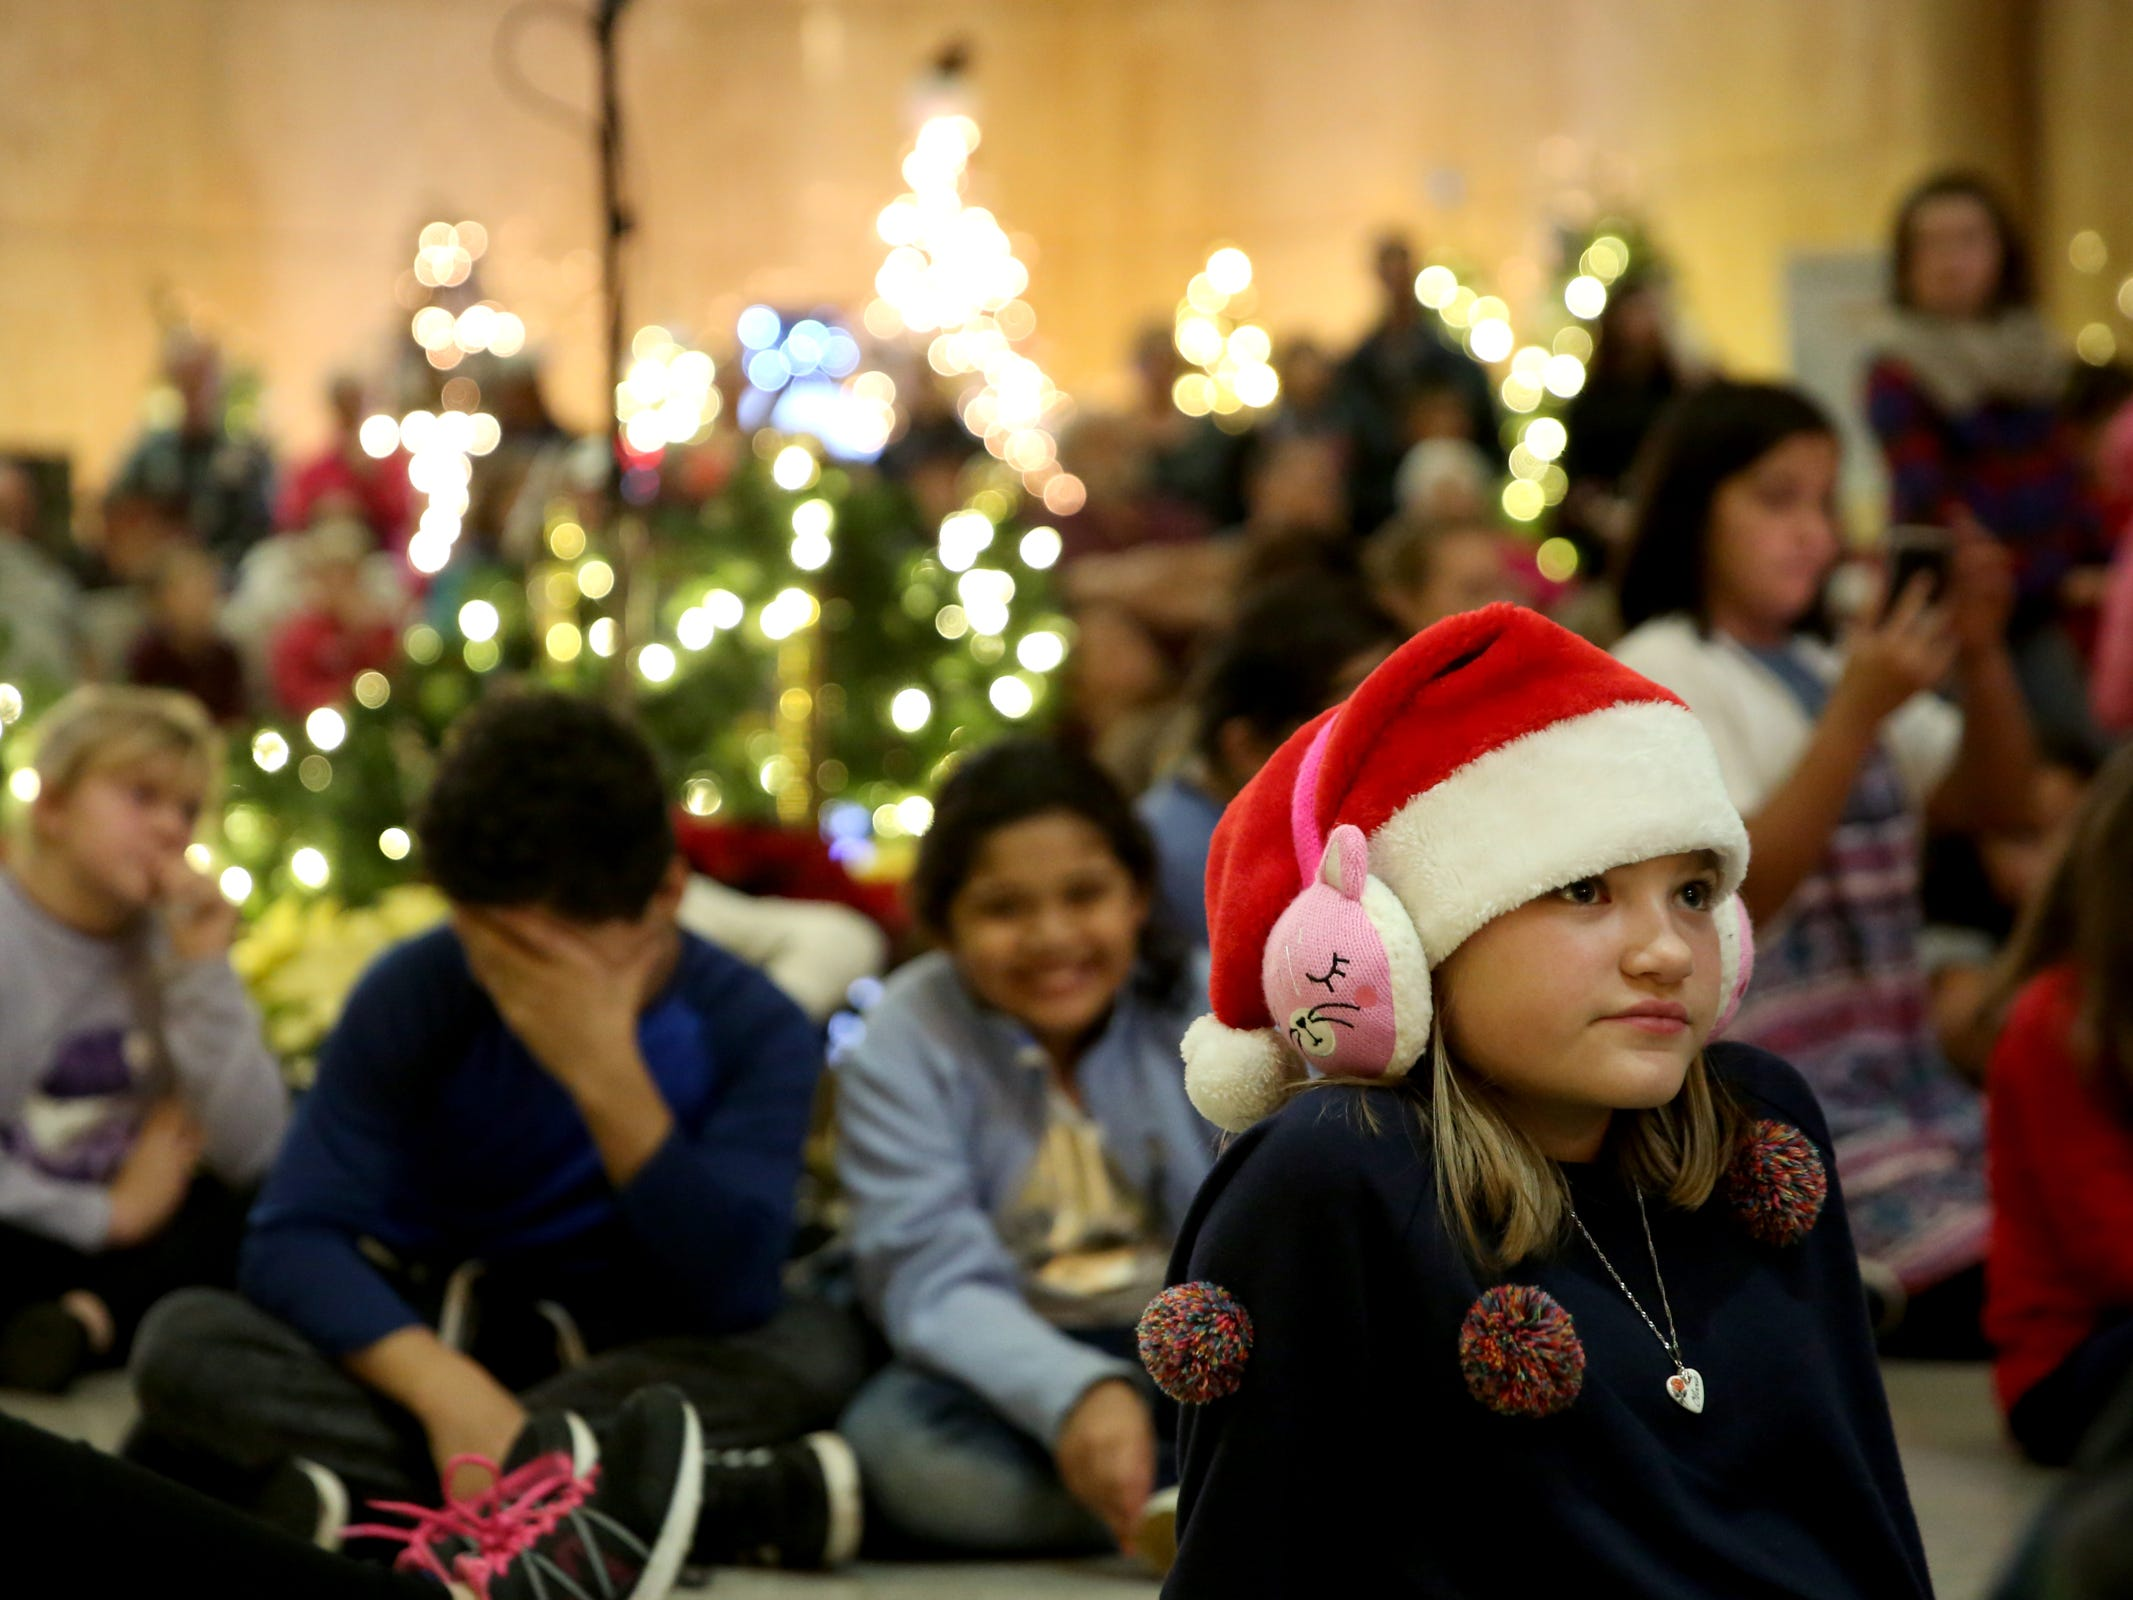 Olivia Weigel, 10, of Turner, attends the Holiday Tree Lighting Celebration at the Oregon State Capitol in Salem on Tuesday, Nov. 27, 2018.